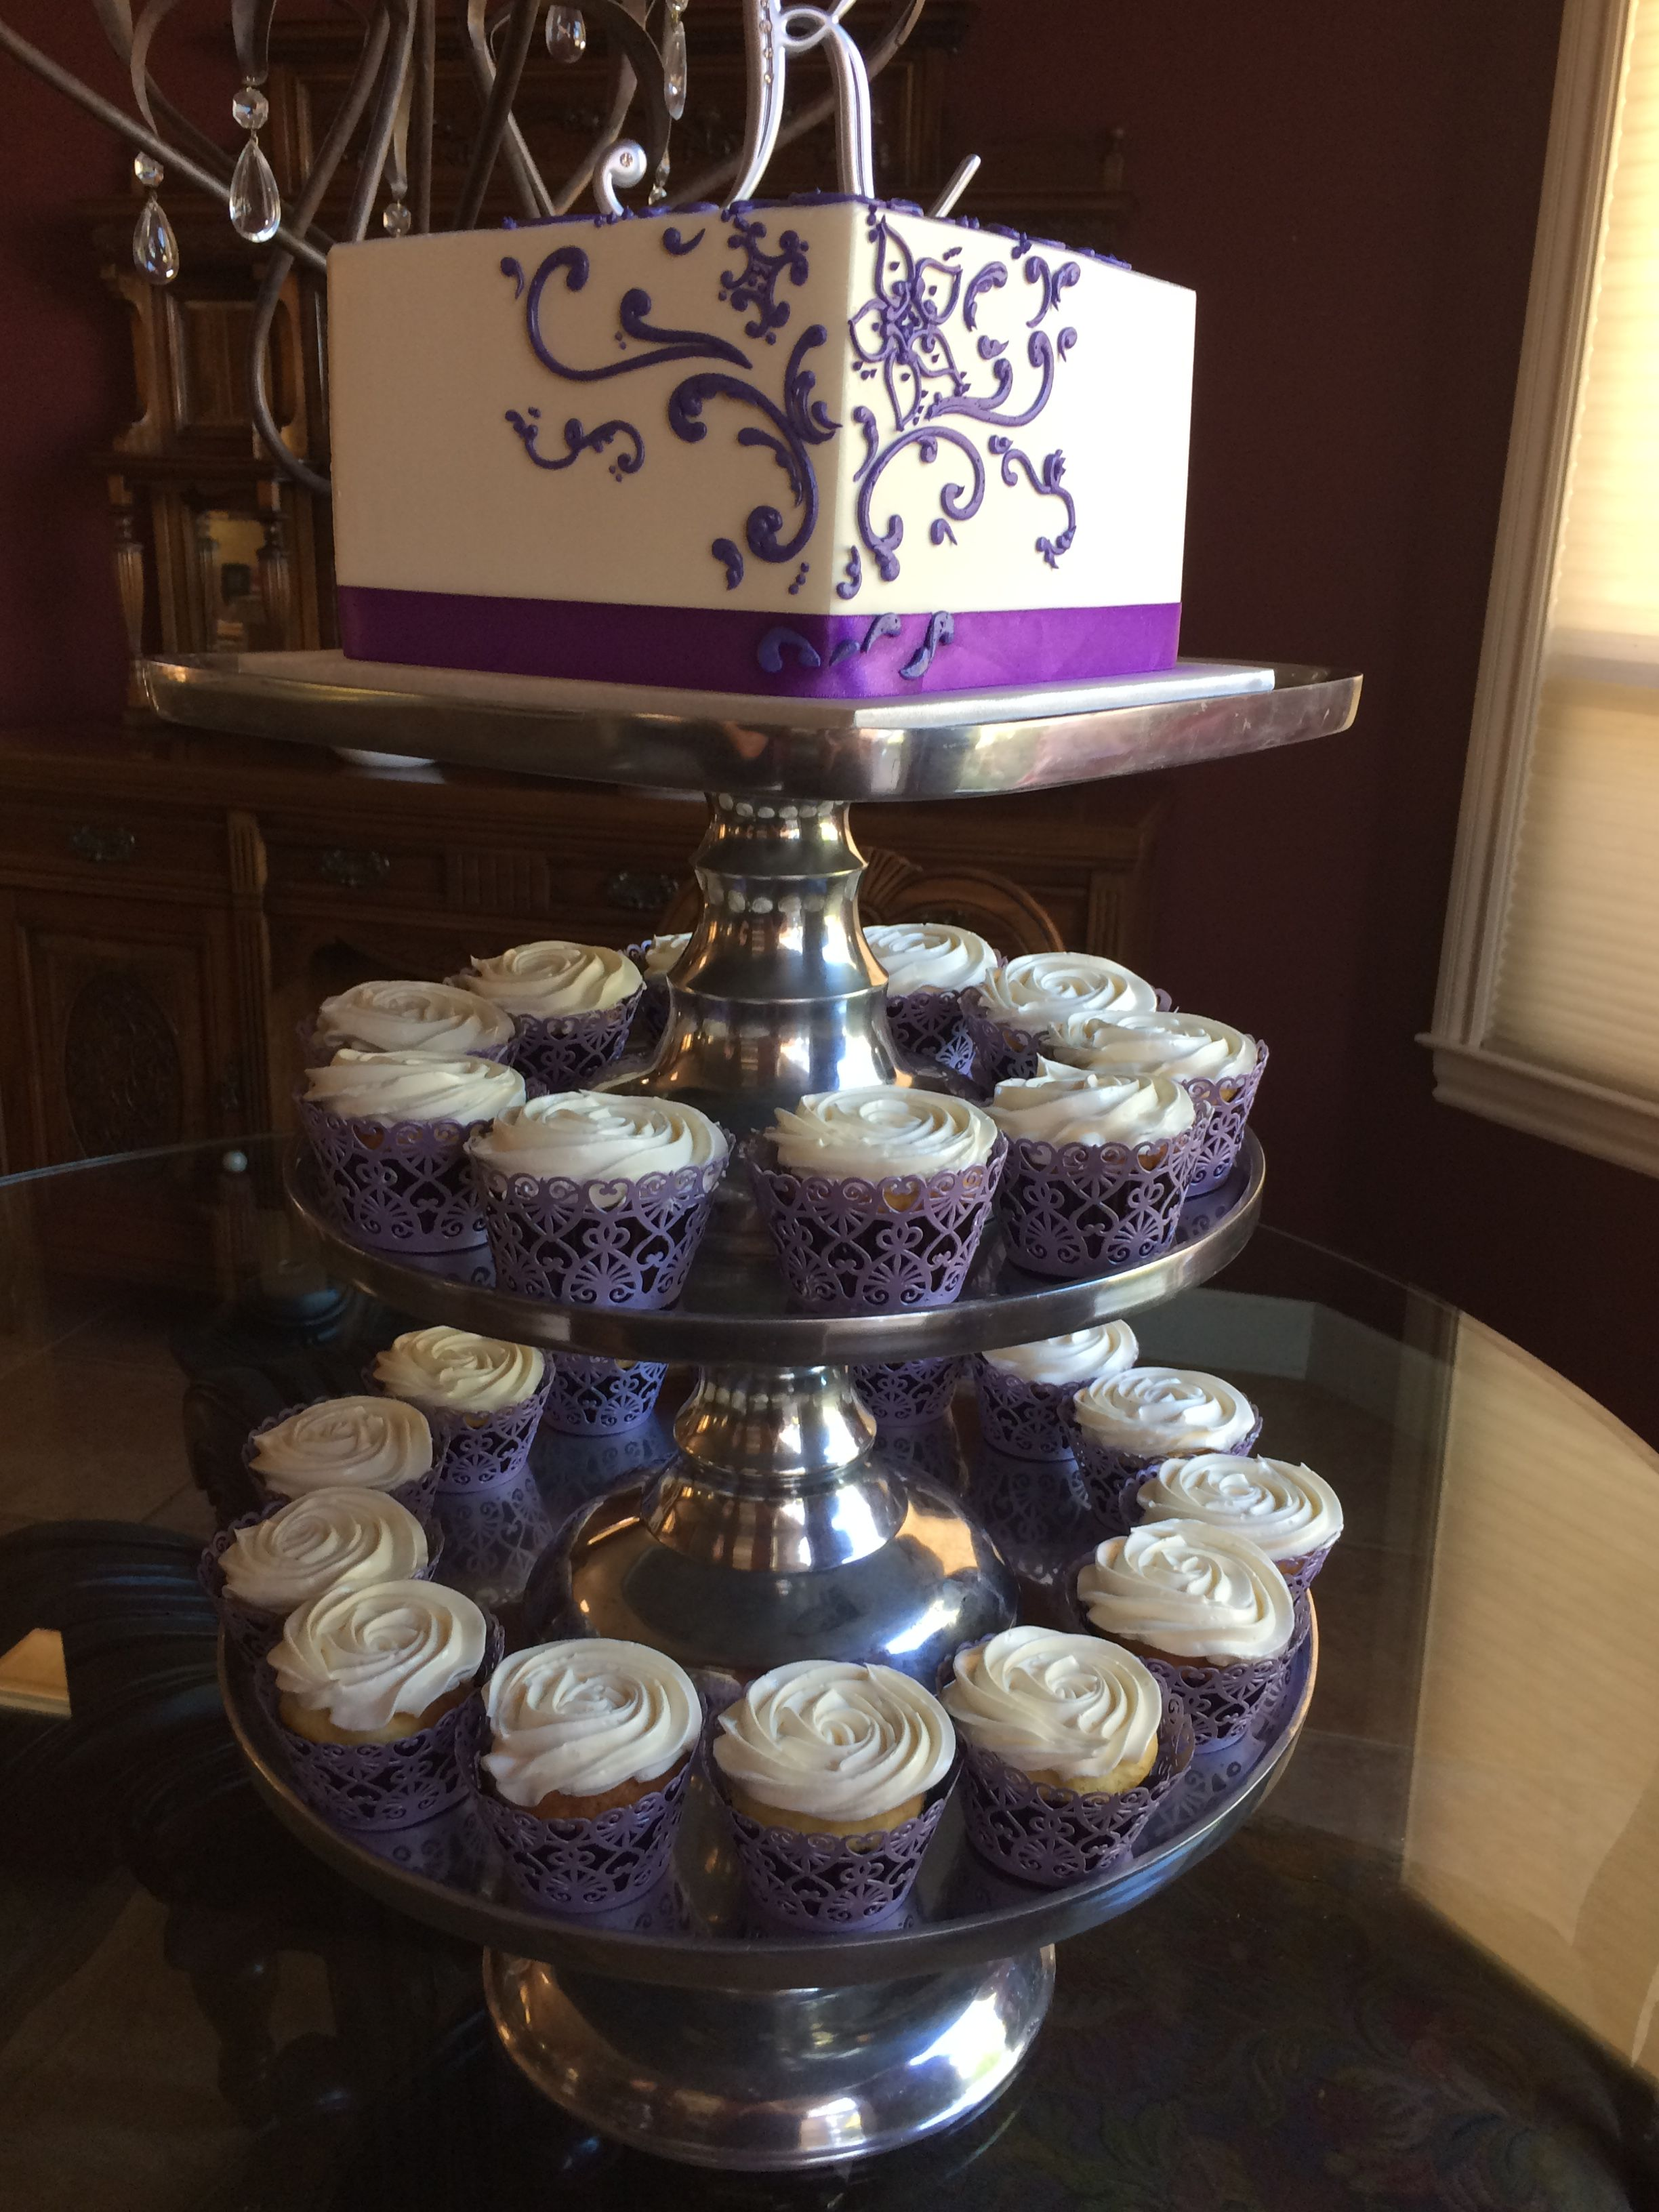 Square wedding cake with purple scrolling and rosette cupcakes